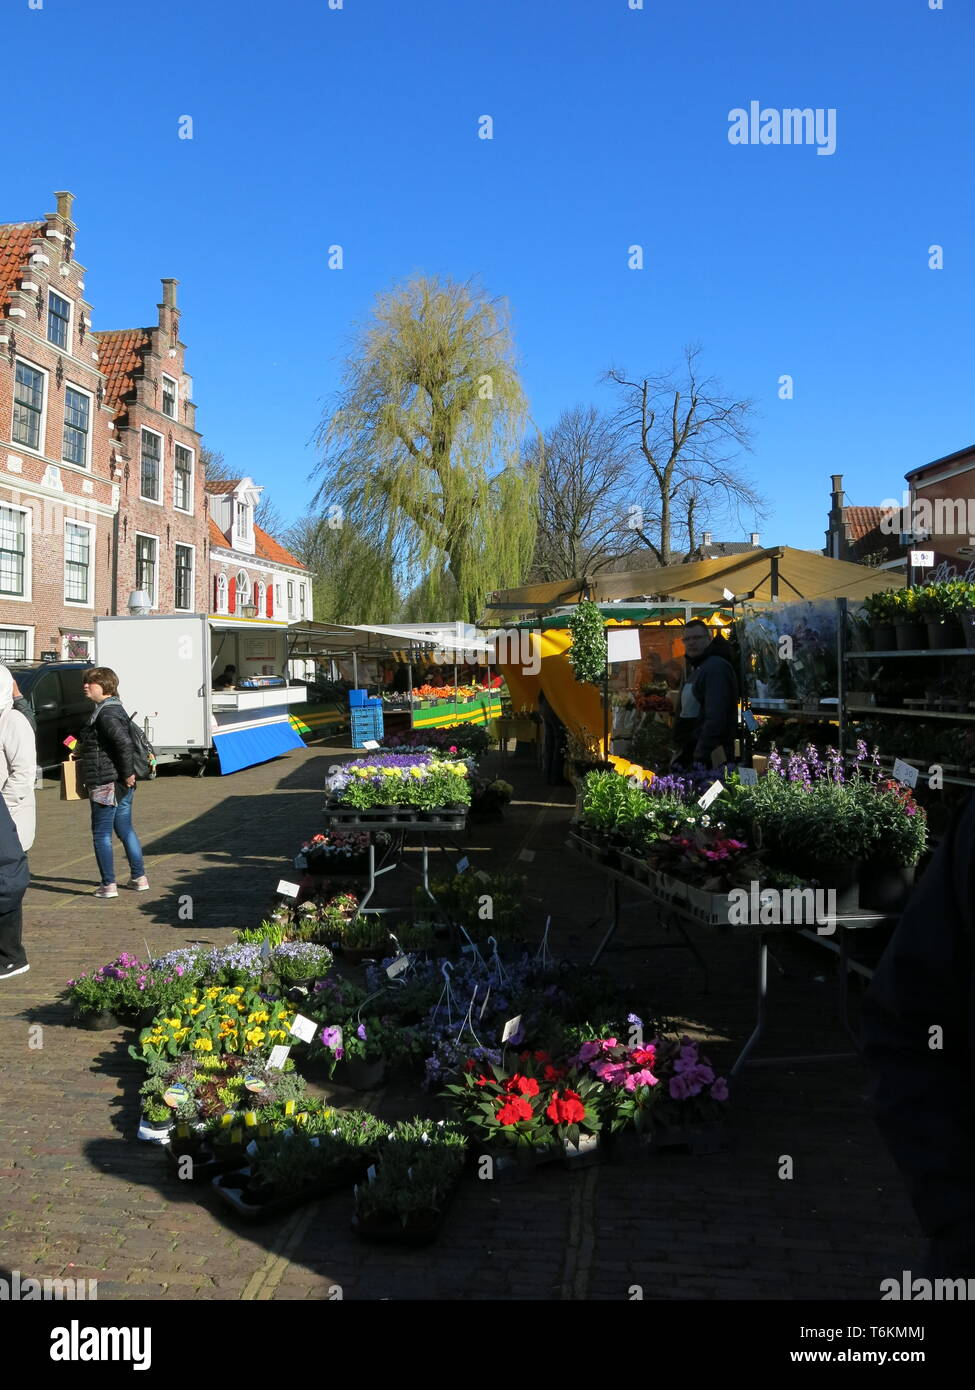 View of a flower stall at the Wednesday morning market in the pretty tourist town of Edam, North Holland; April 2019 - Stock Image